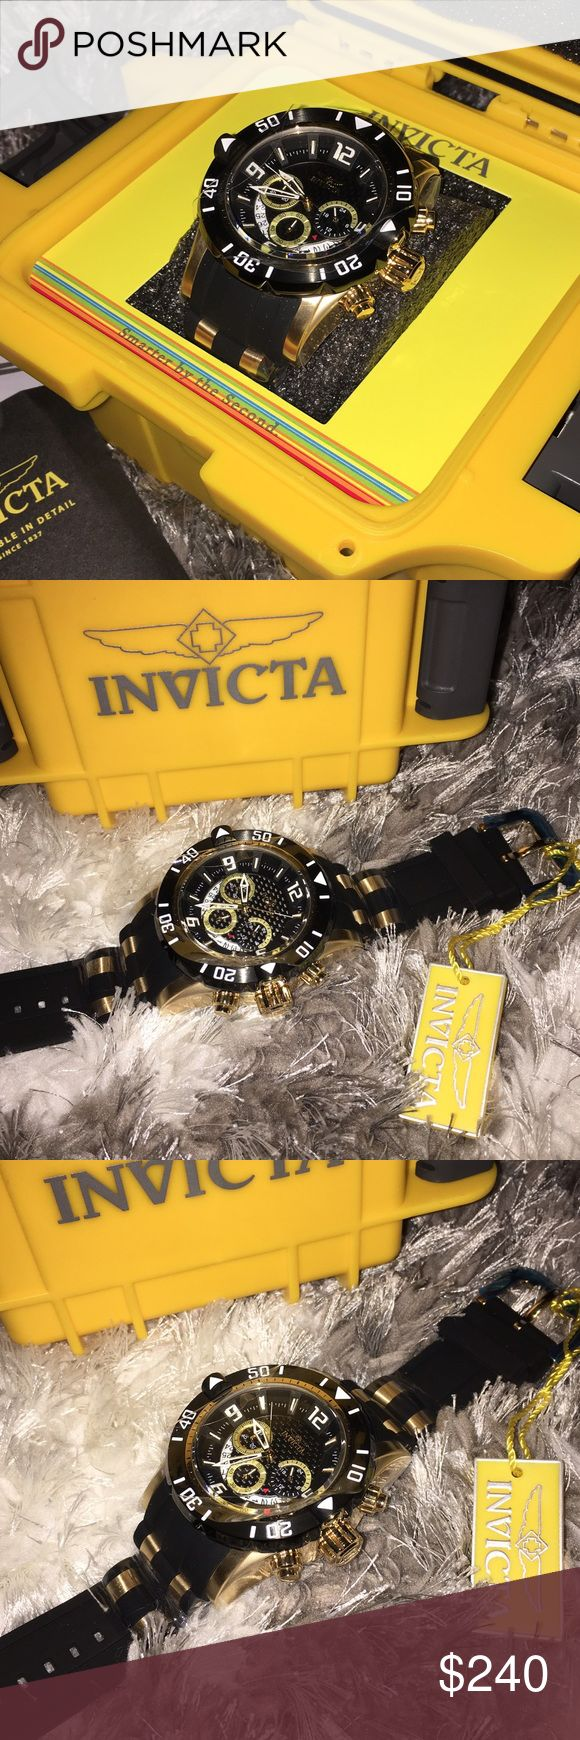 Nwt 100% Authentic Invicta Mens Watch Nwt 100% Authentic Invicta Mens Watch Retail: $395 Color: Black/Gold  Price is firm.. Thank you.. Invicta Accessories Watches